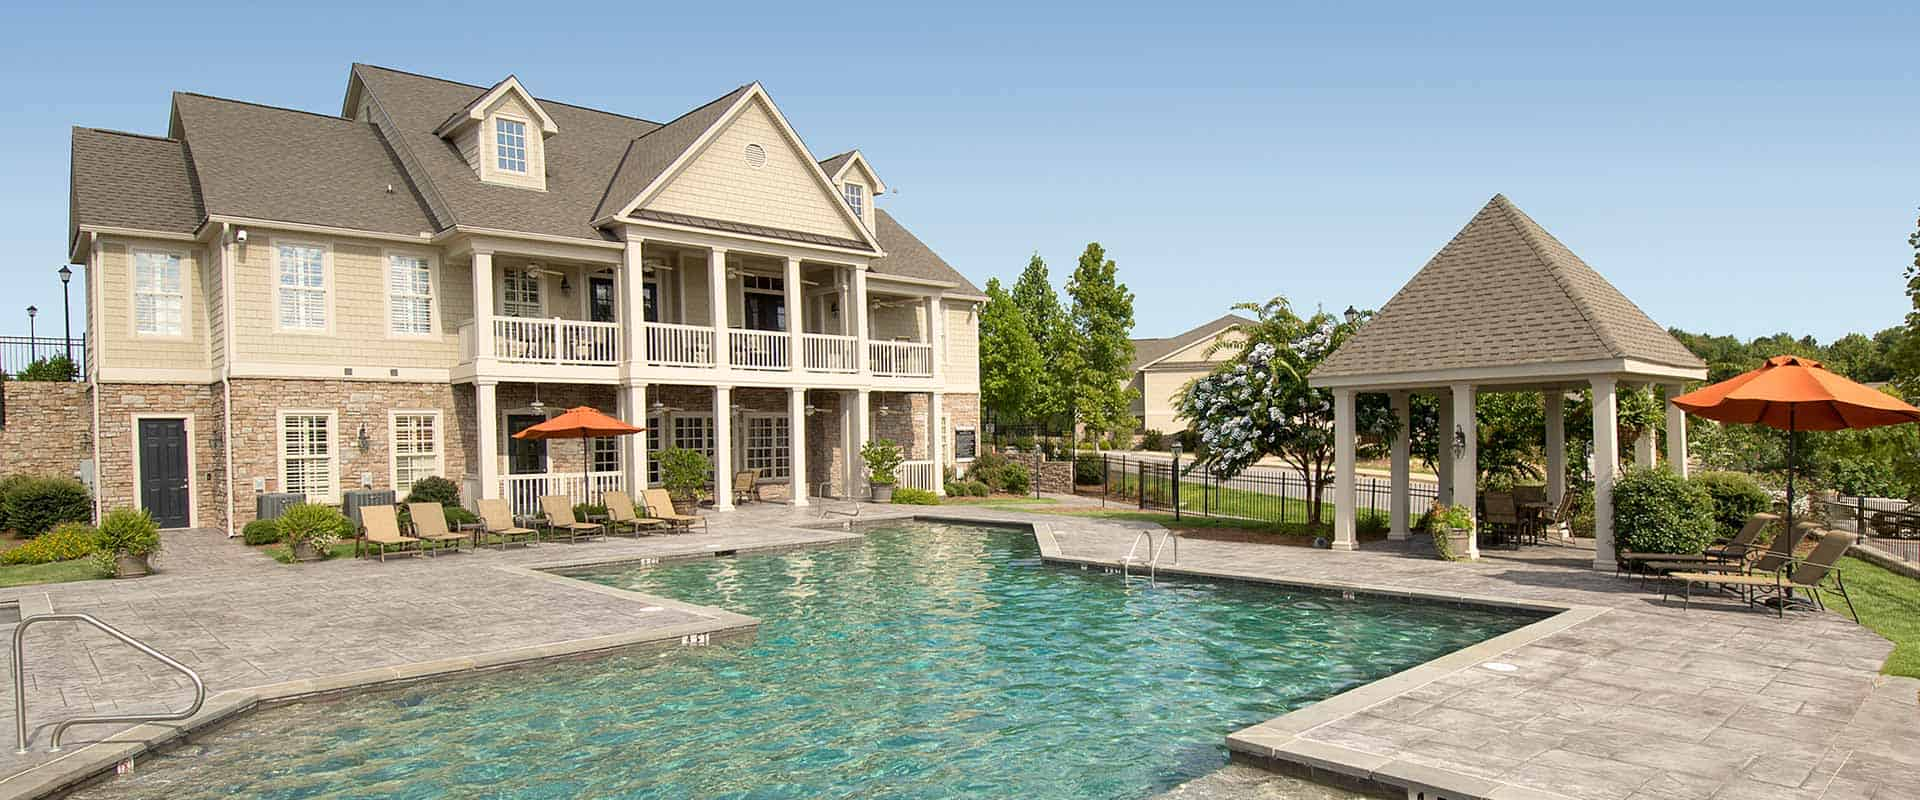 Greystone Farms Reserve Pool Greystone Properties Columbus GA Apartments